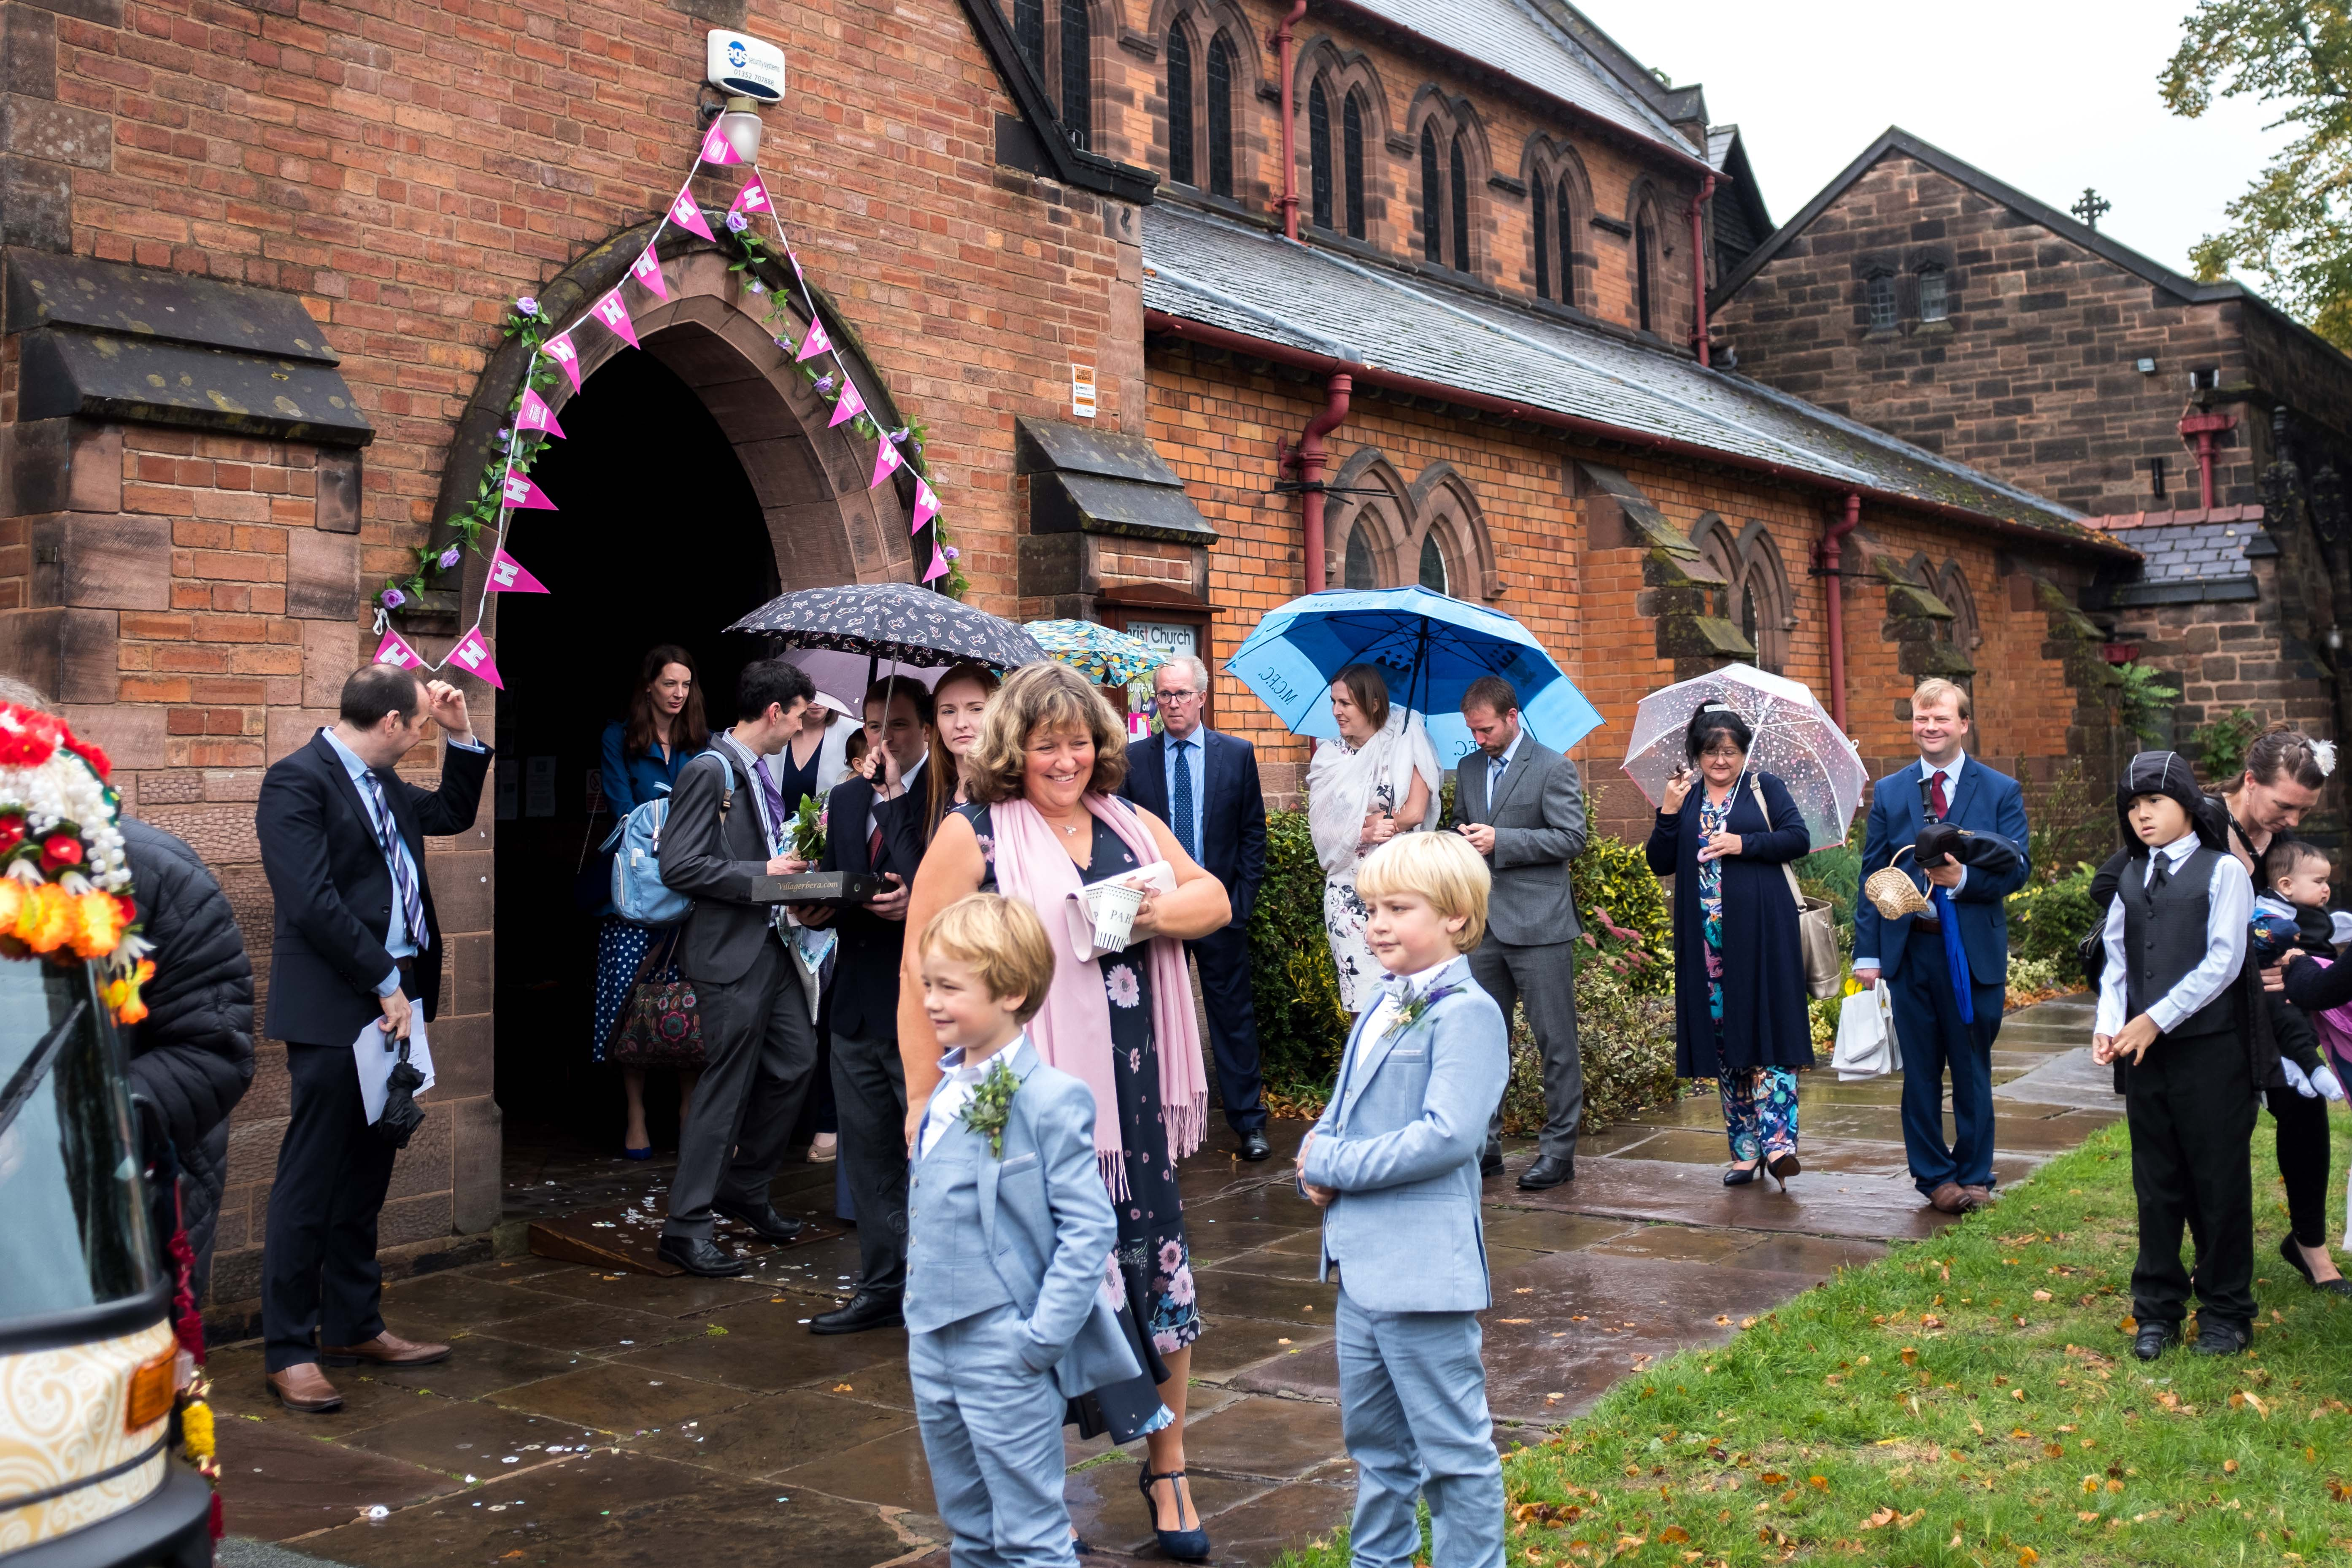 Wedding congregtion wait in the rain for the bride and groom to come out